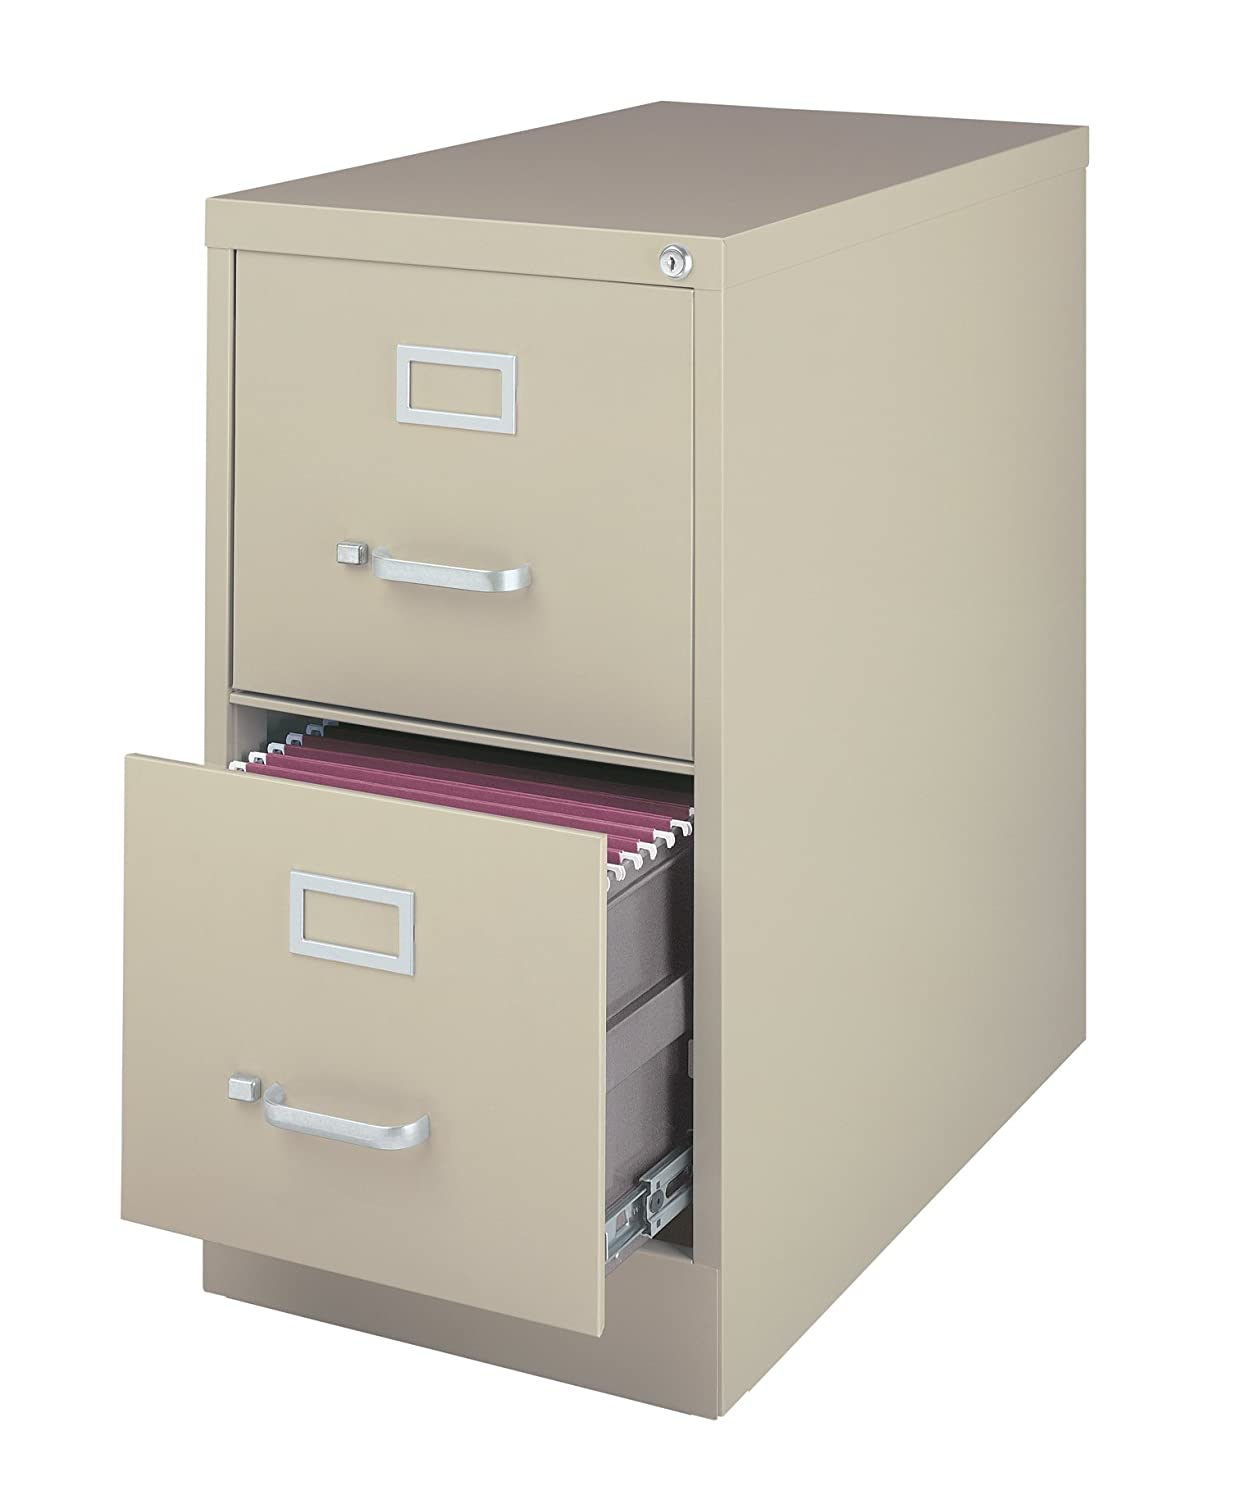 Office Dimensions Commercial Grade 25 Deep 2 Drawer Letter-Width Vertical File Cabinet, Putty HIRSH INDUSTRIES 20385